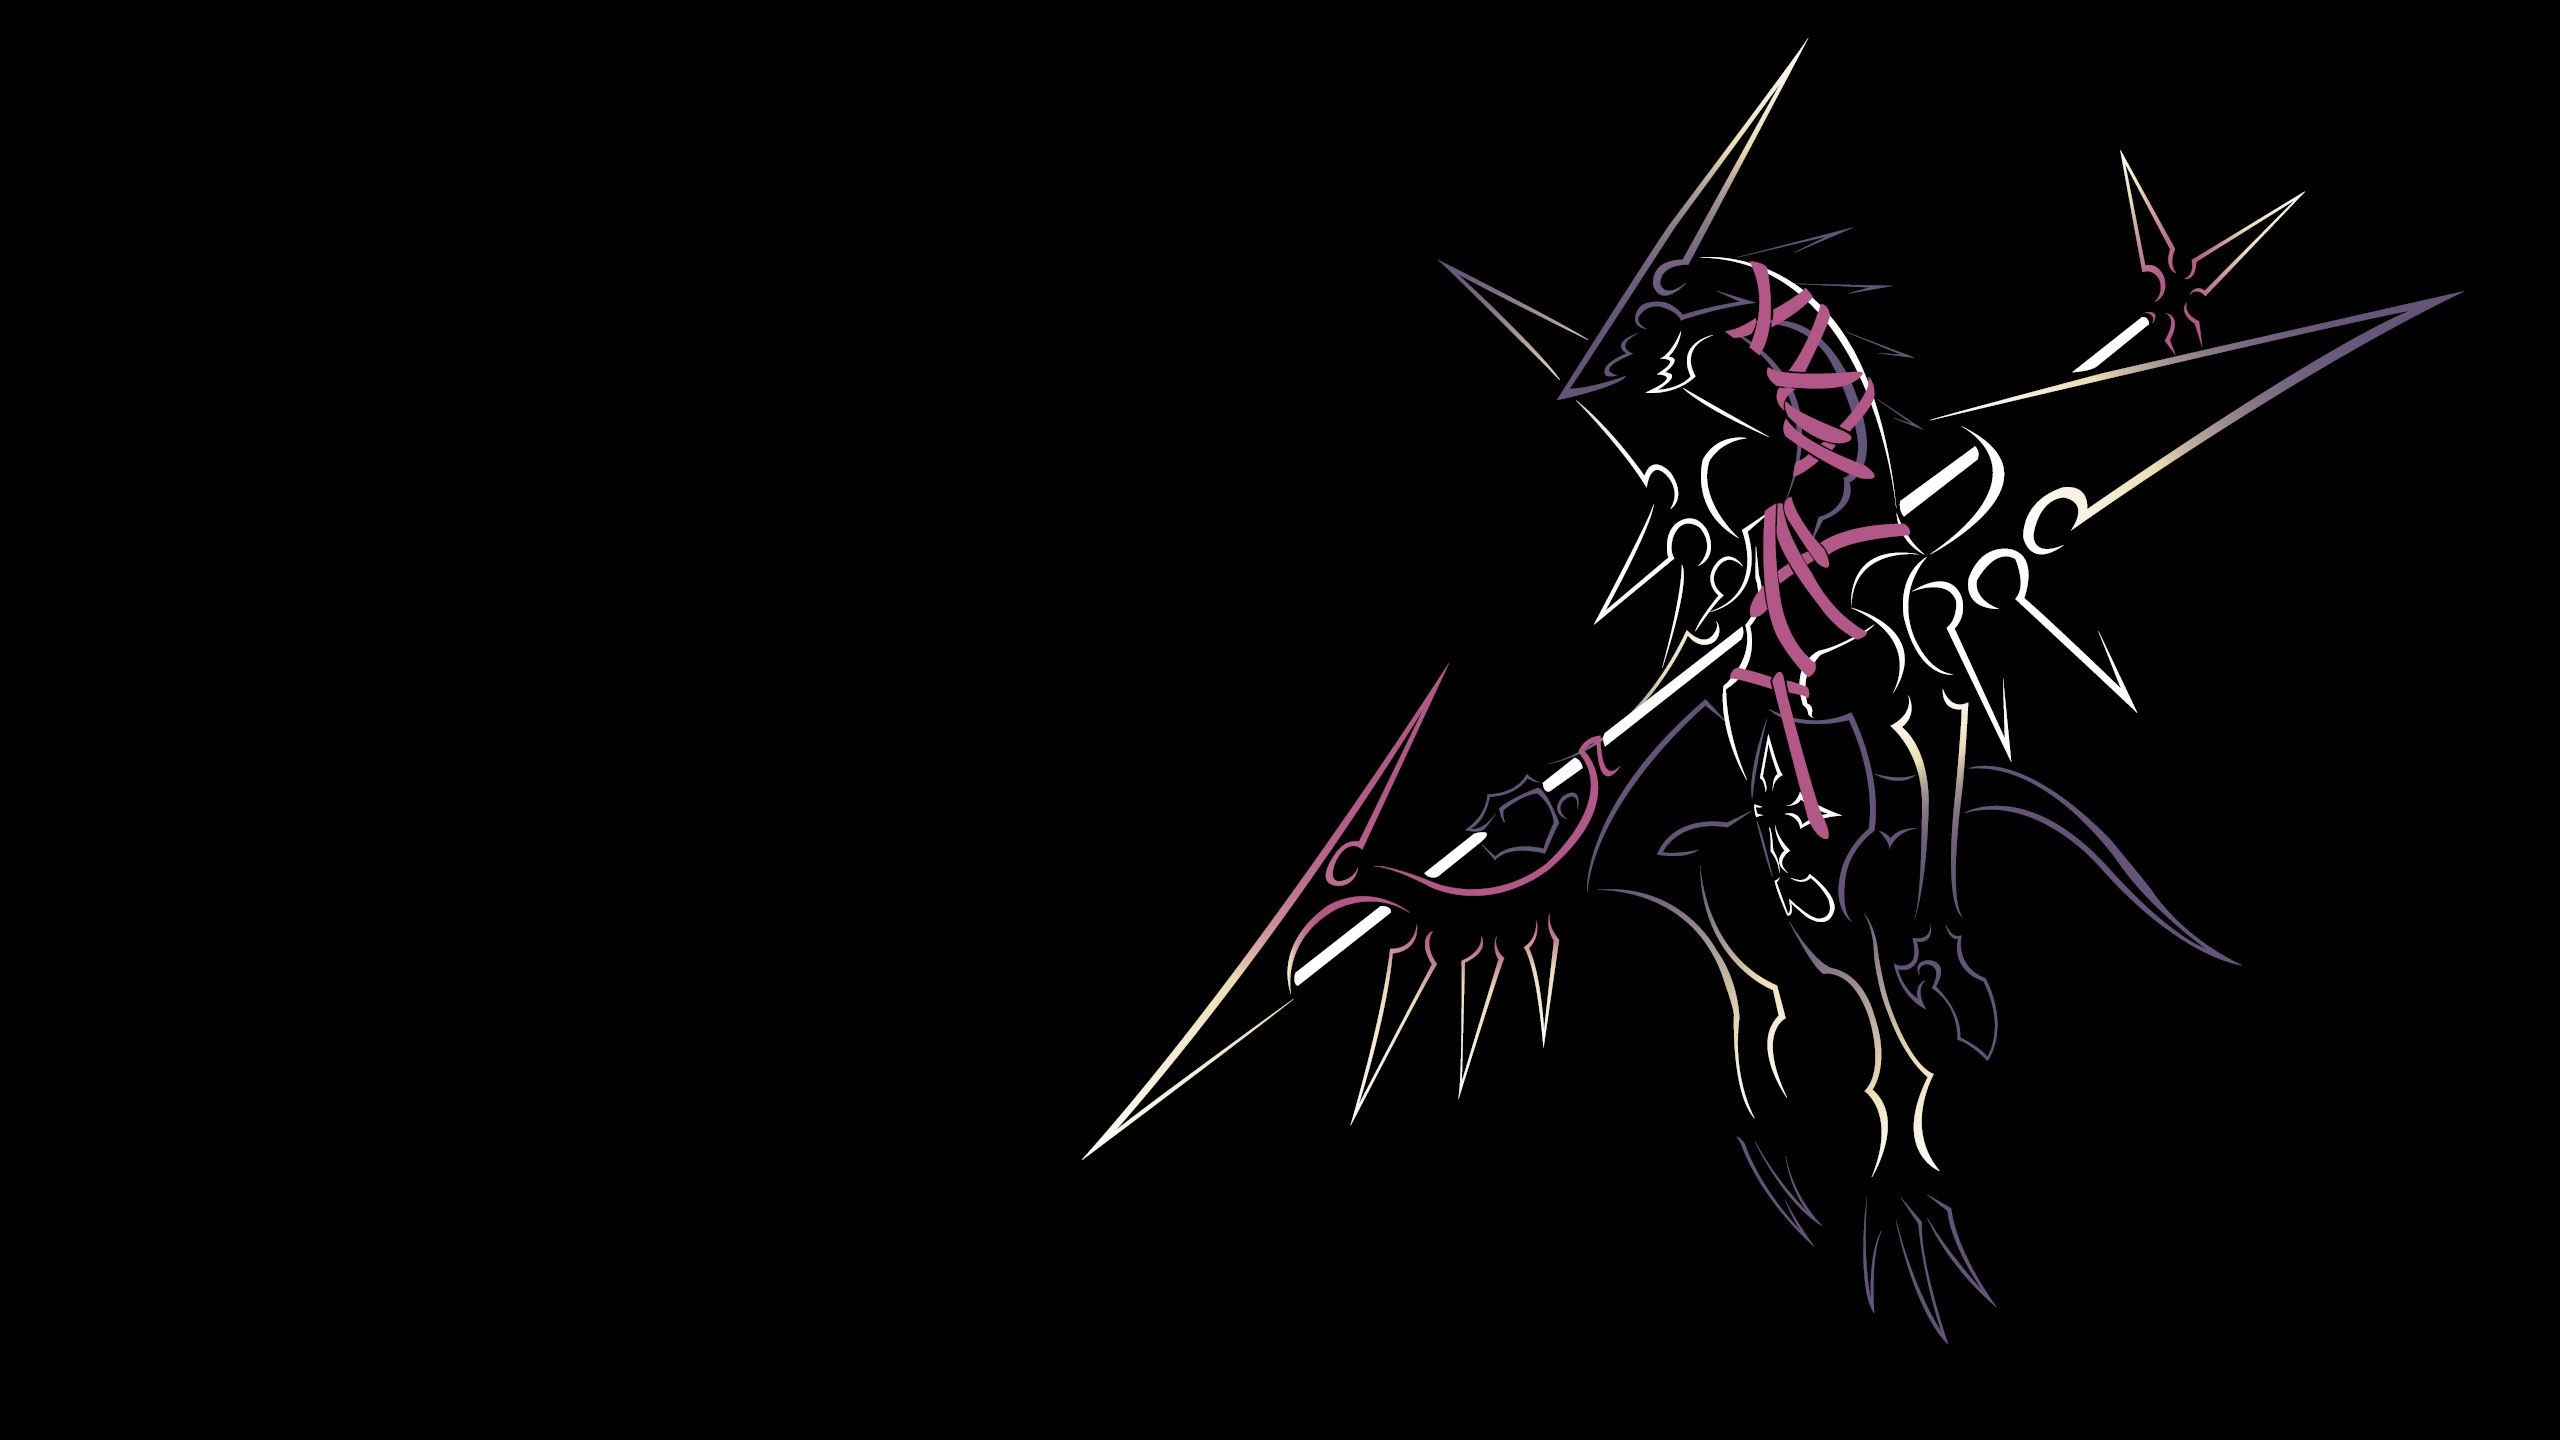 2560x1440 Kingdom Hearts 3 Wallpapers - Wallpaper Cave